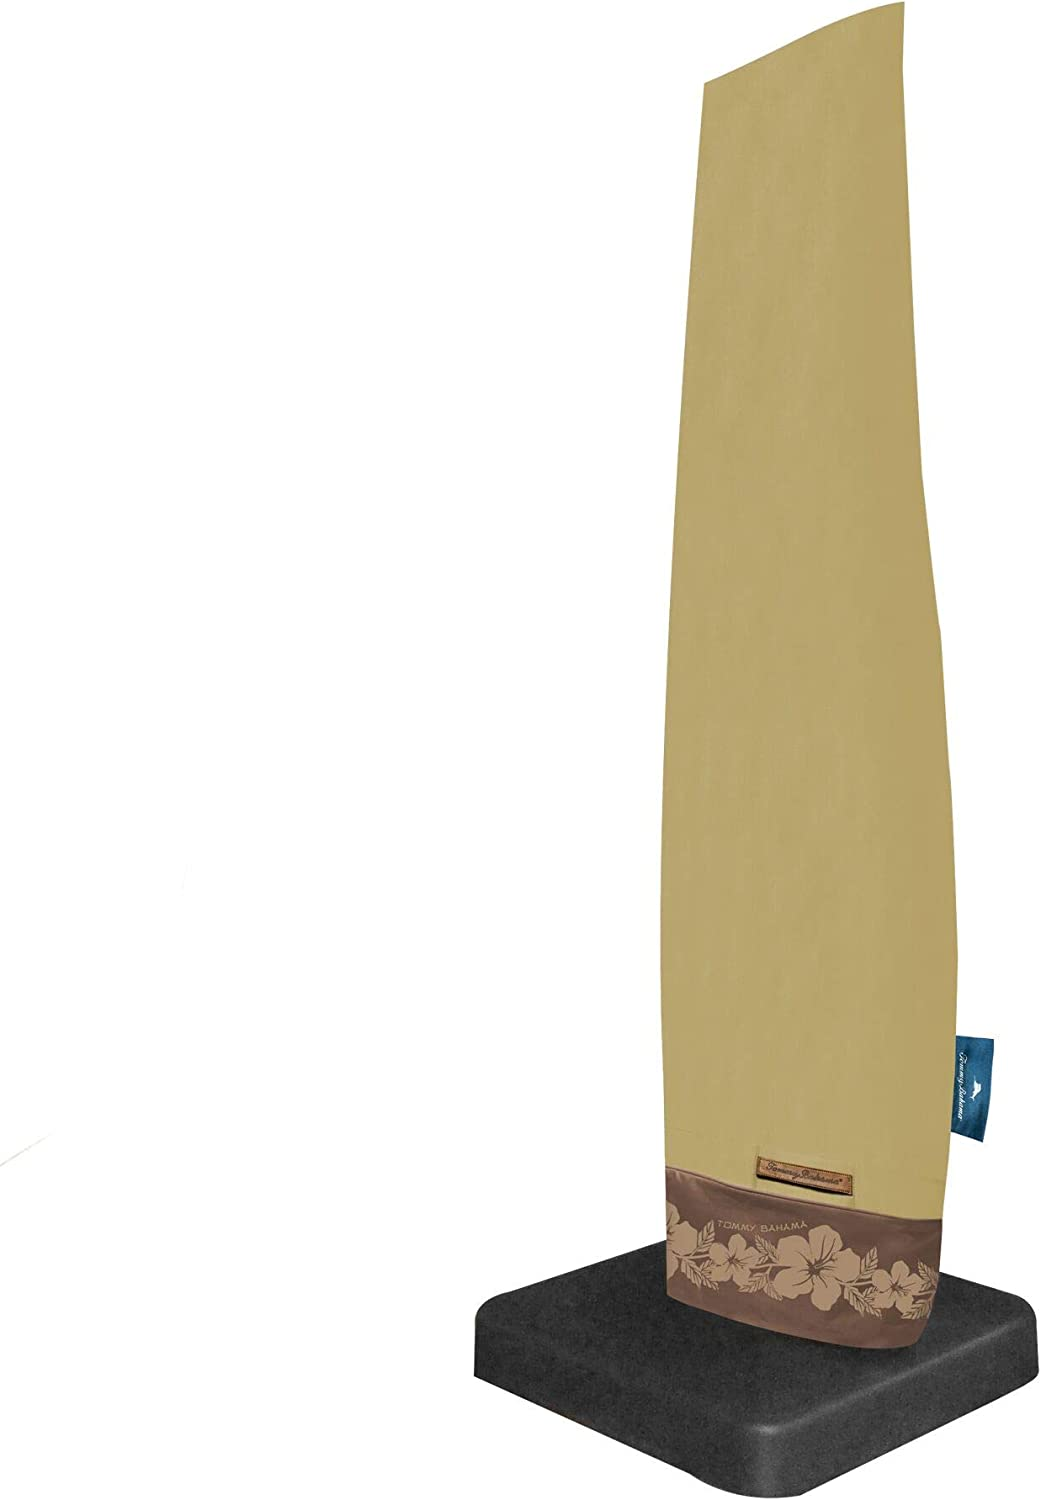 Tommy Bahama 29602 Cantilever Patio Umbrella & Frame Cover, Tan/Brown